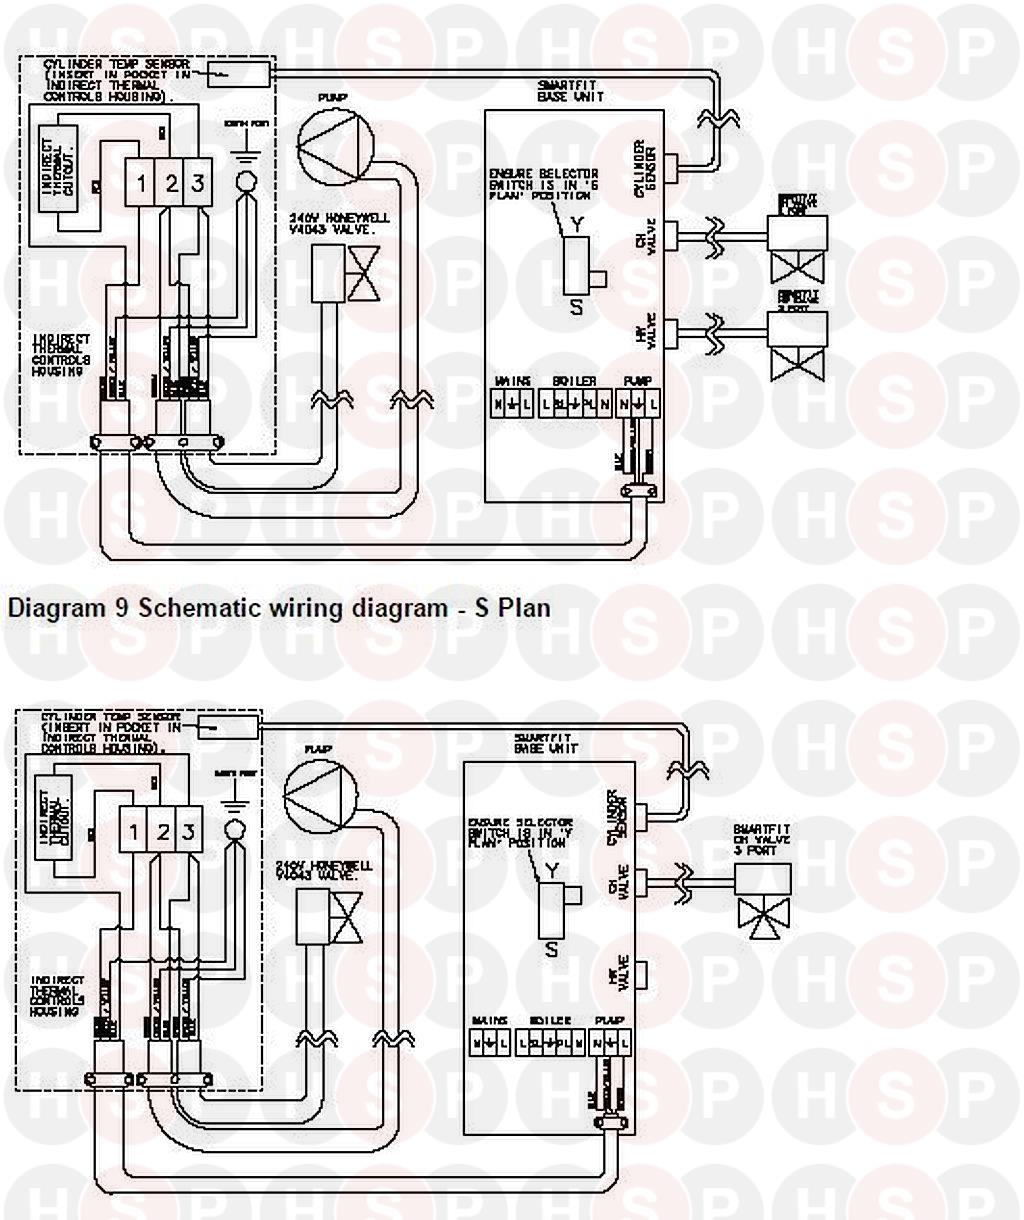 Megaflo Piping Diagram Schematics Wiring Diagrams What Is A 1504 Unvented Cylinder Rh Stockimages Us Water Boiler